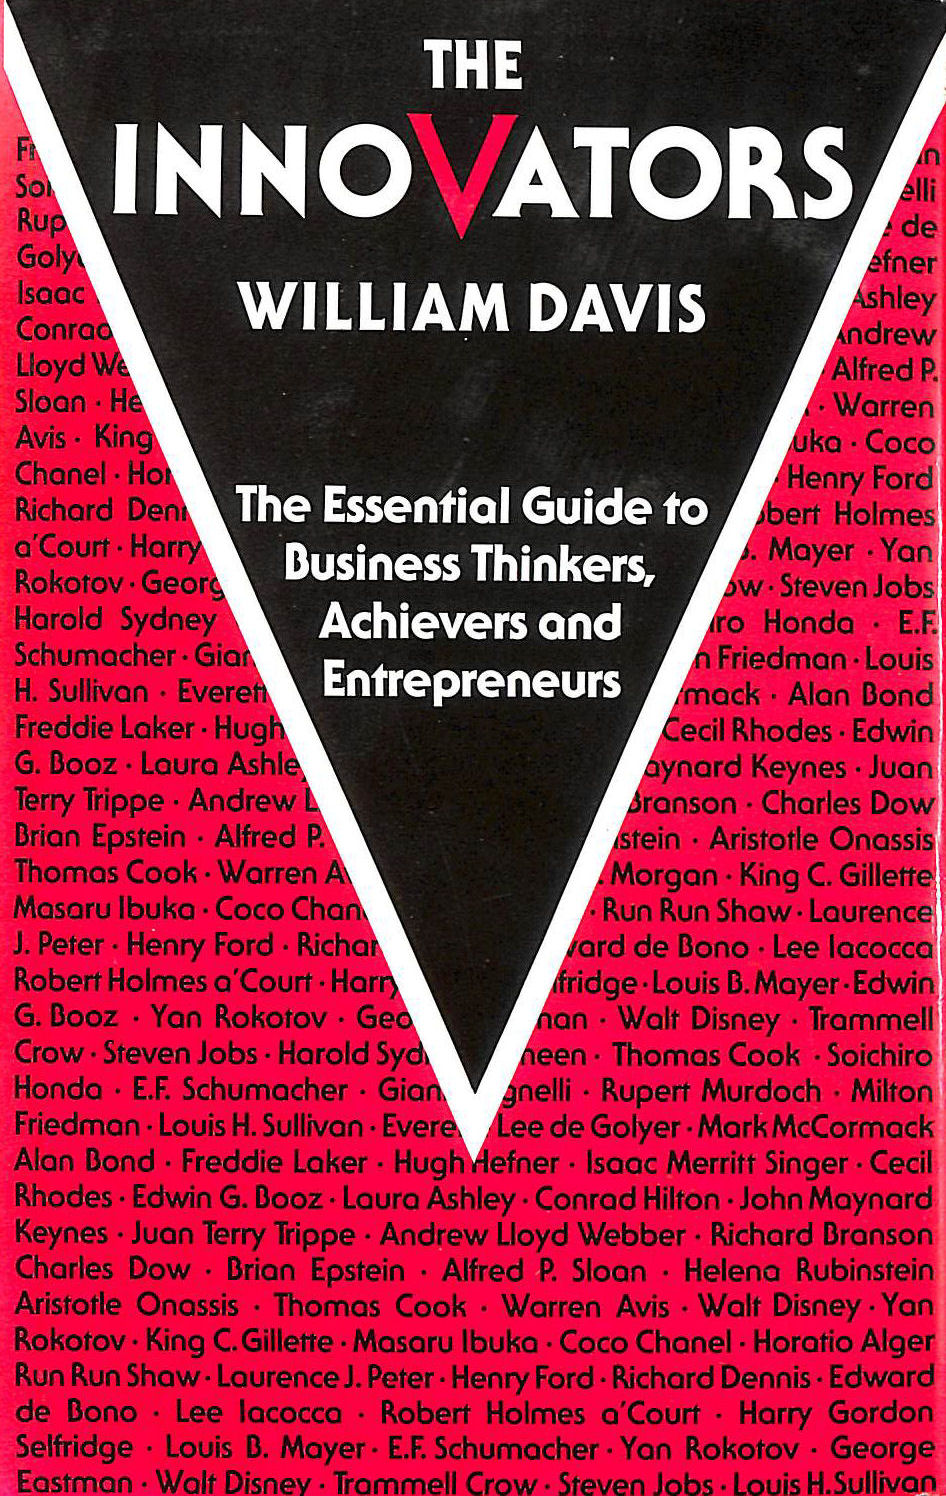 Image for The Innovators The Essential Guide To Business Thinkers, Achievers And Entrepreneurs